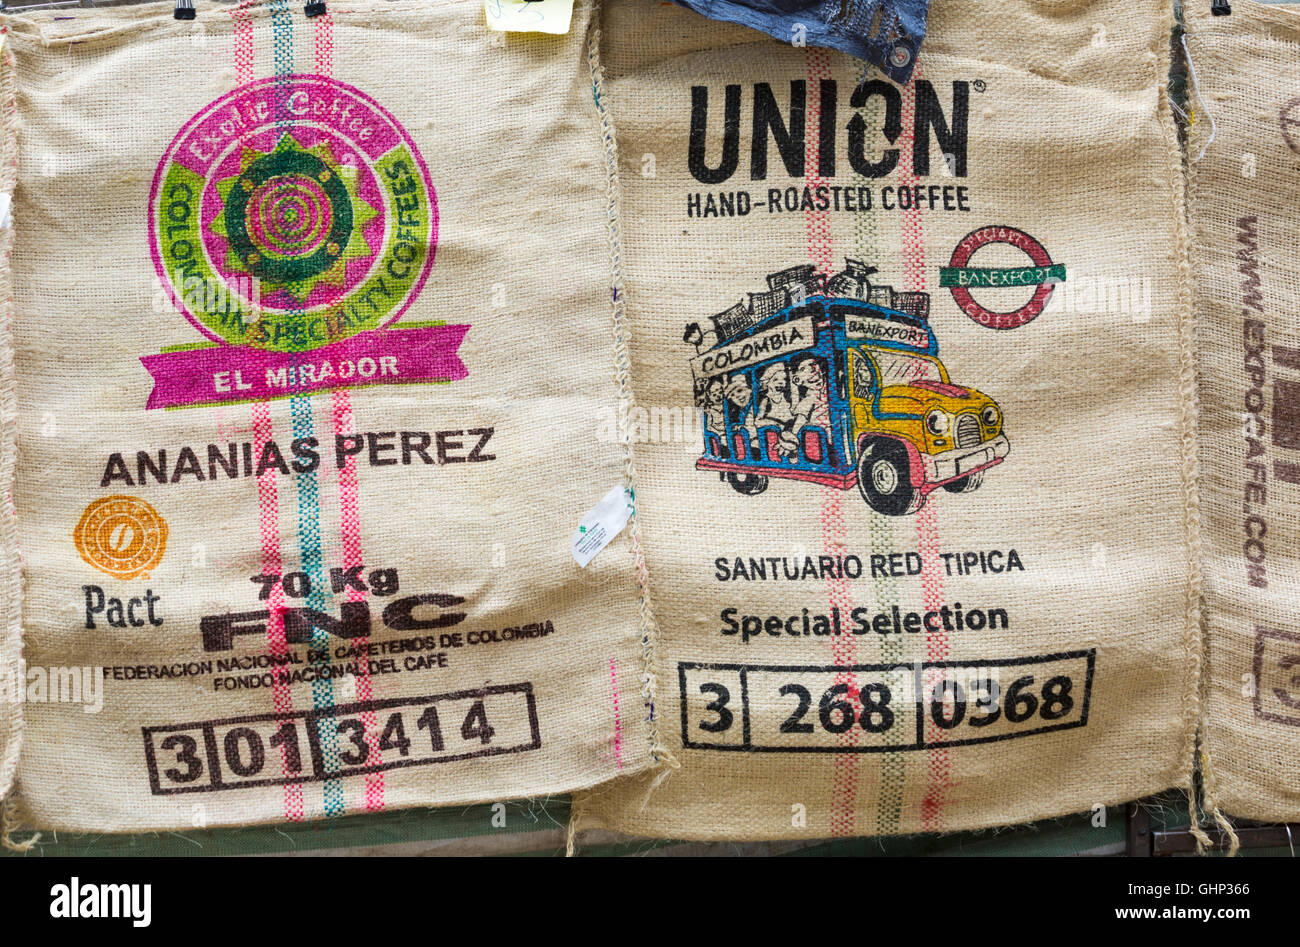 Close up of Coffee sacks for sale on market stall off Brick Lane, London in July - Stock Image